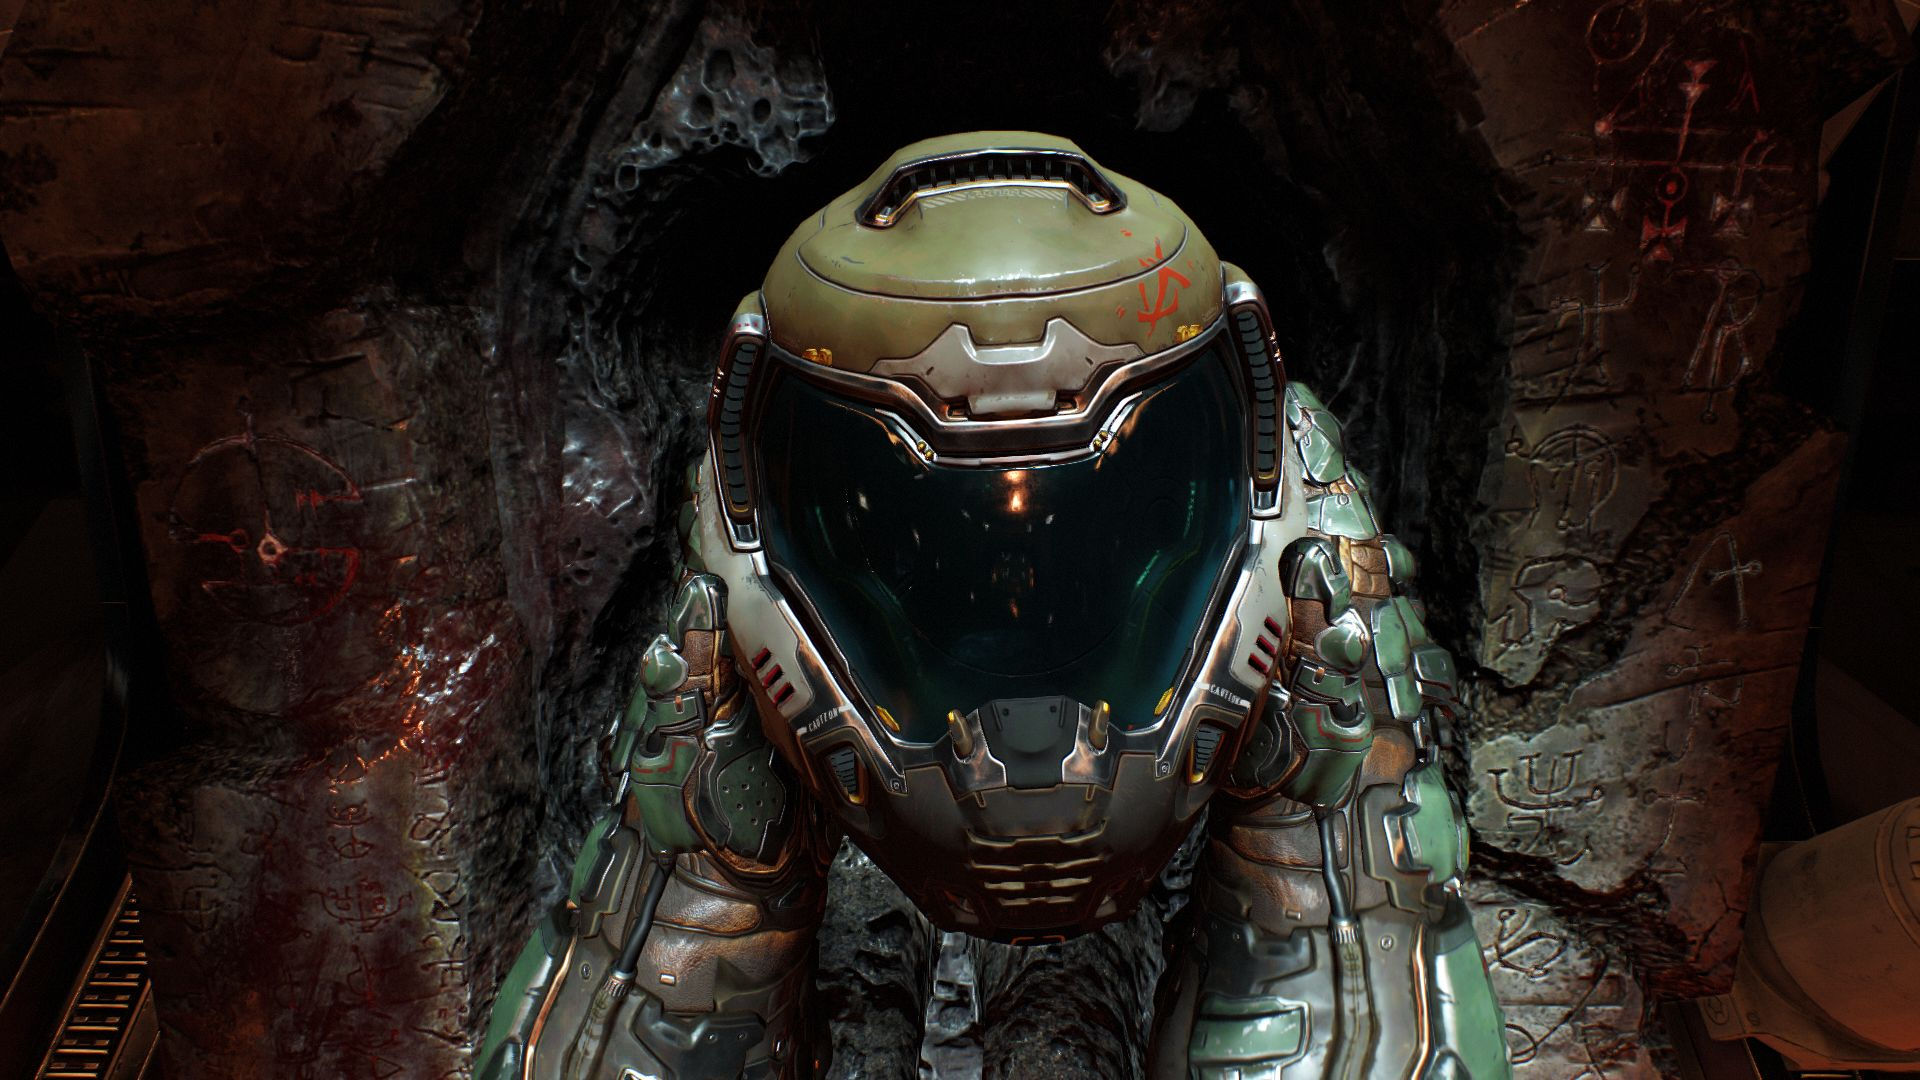 Doom 2016 Notebook and Desktop Benchmarks - NotebookCheck